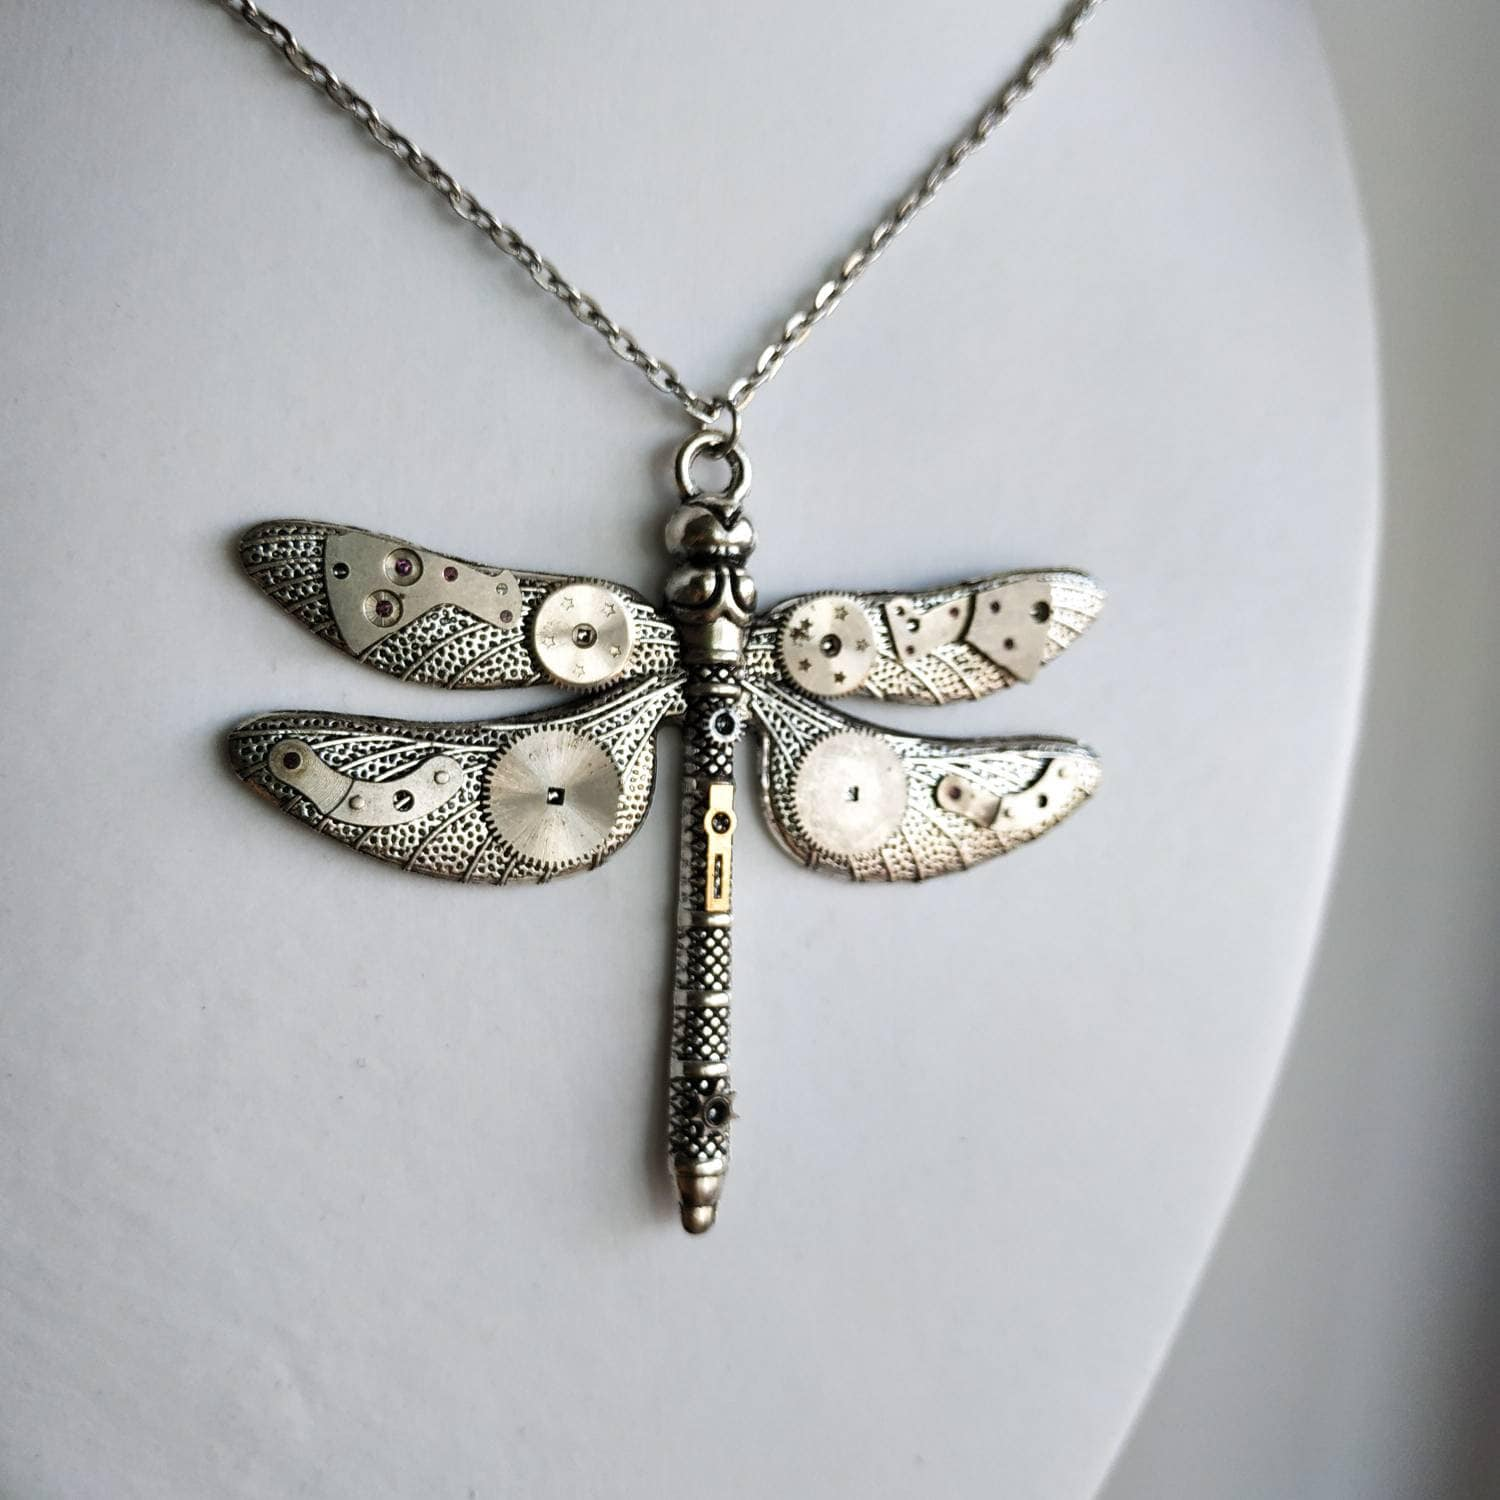 Dragon fly Necklace Insect Jewelry Whimsical Dragonflies Glass Necklaces Tear Drop Pendant Dragonfly Tear drop Necklace,Steampunk